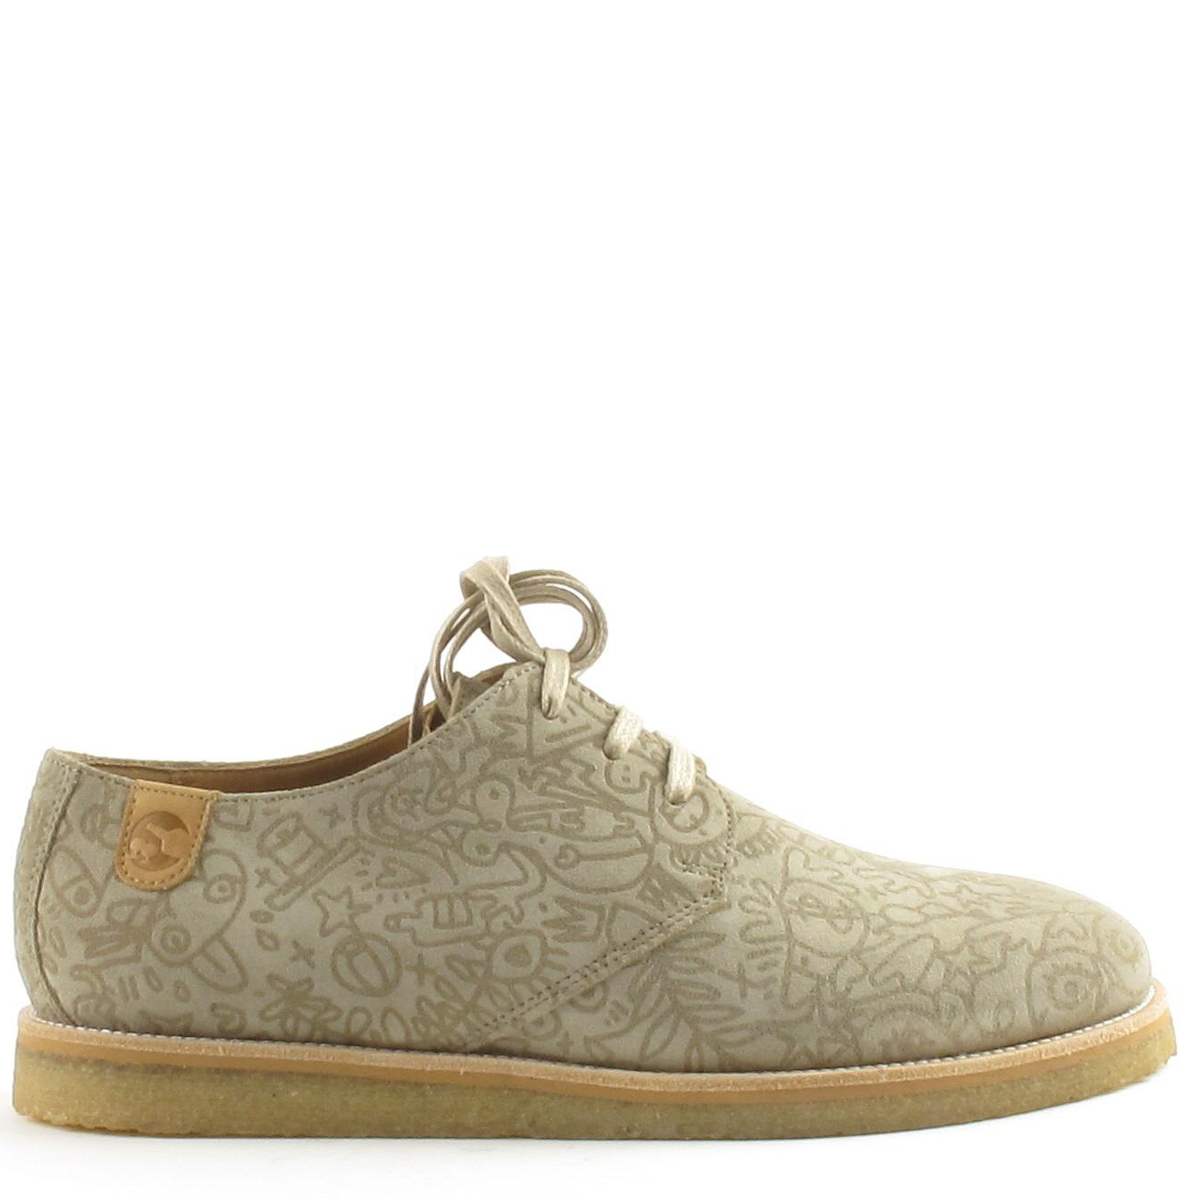 Mercredi Whisky Paddy Beige dNSyM6I